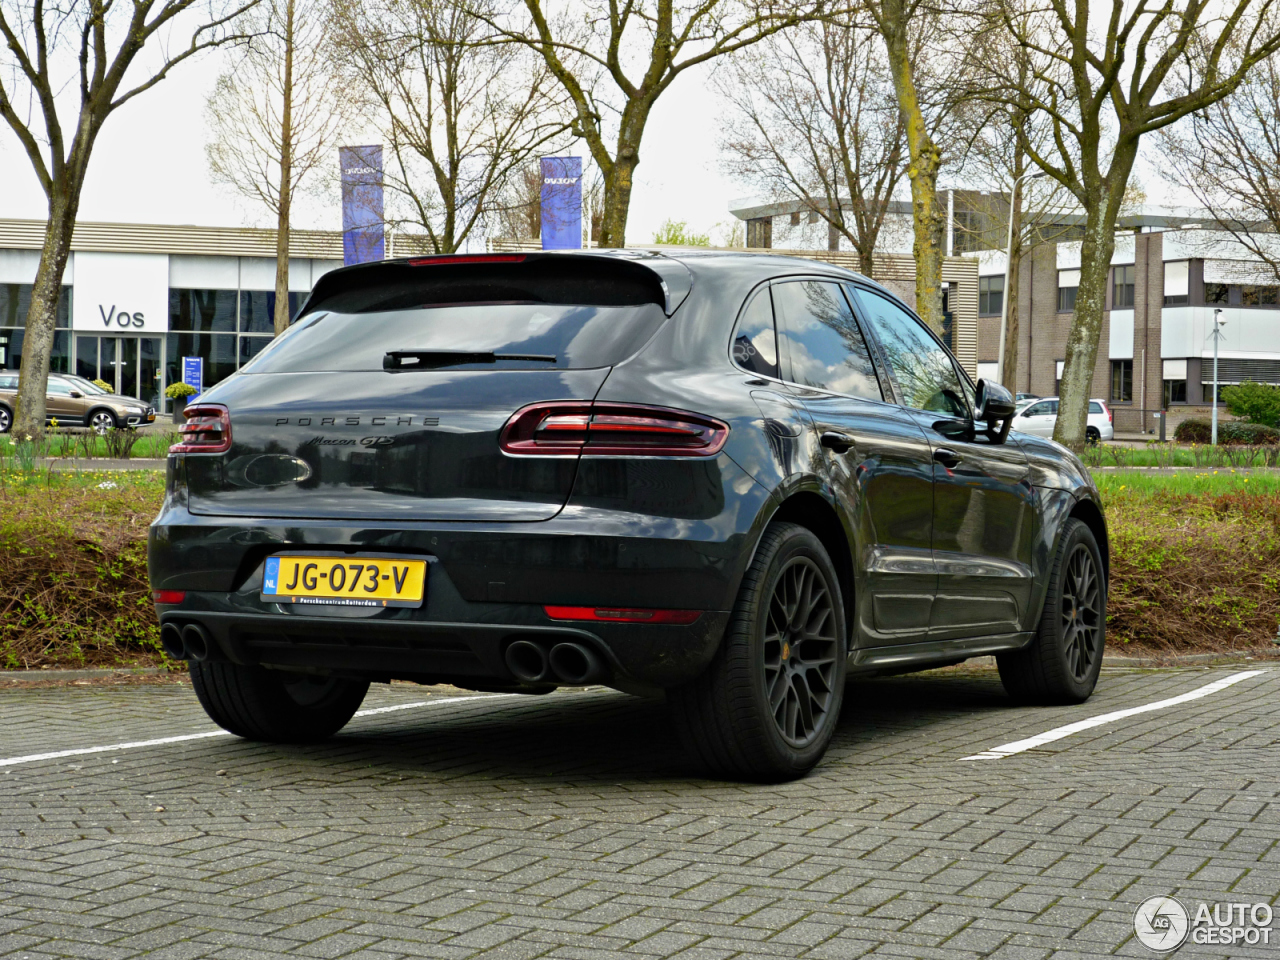 my17 macan images page 18 porsche macan forum. Black Bedroom Furniture Sets. Home Design Ideas